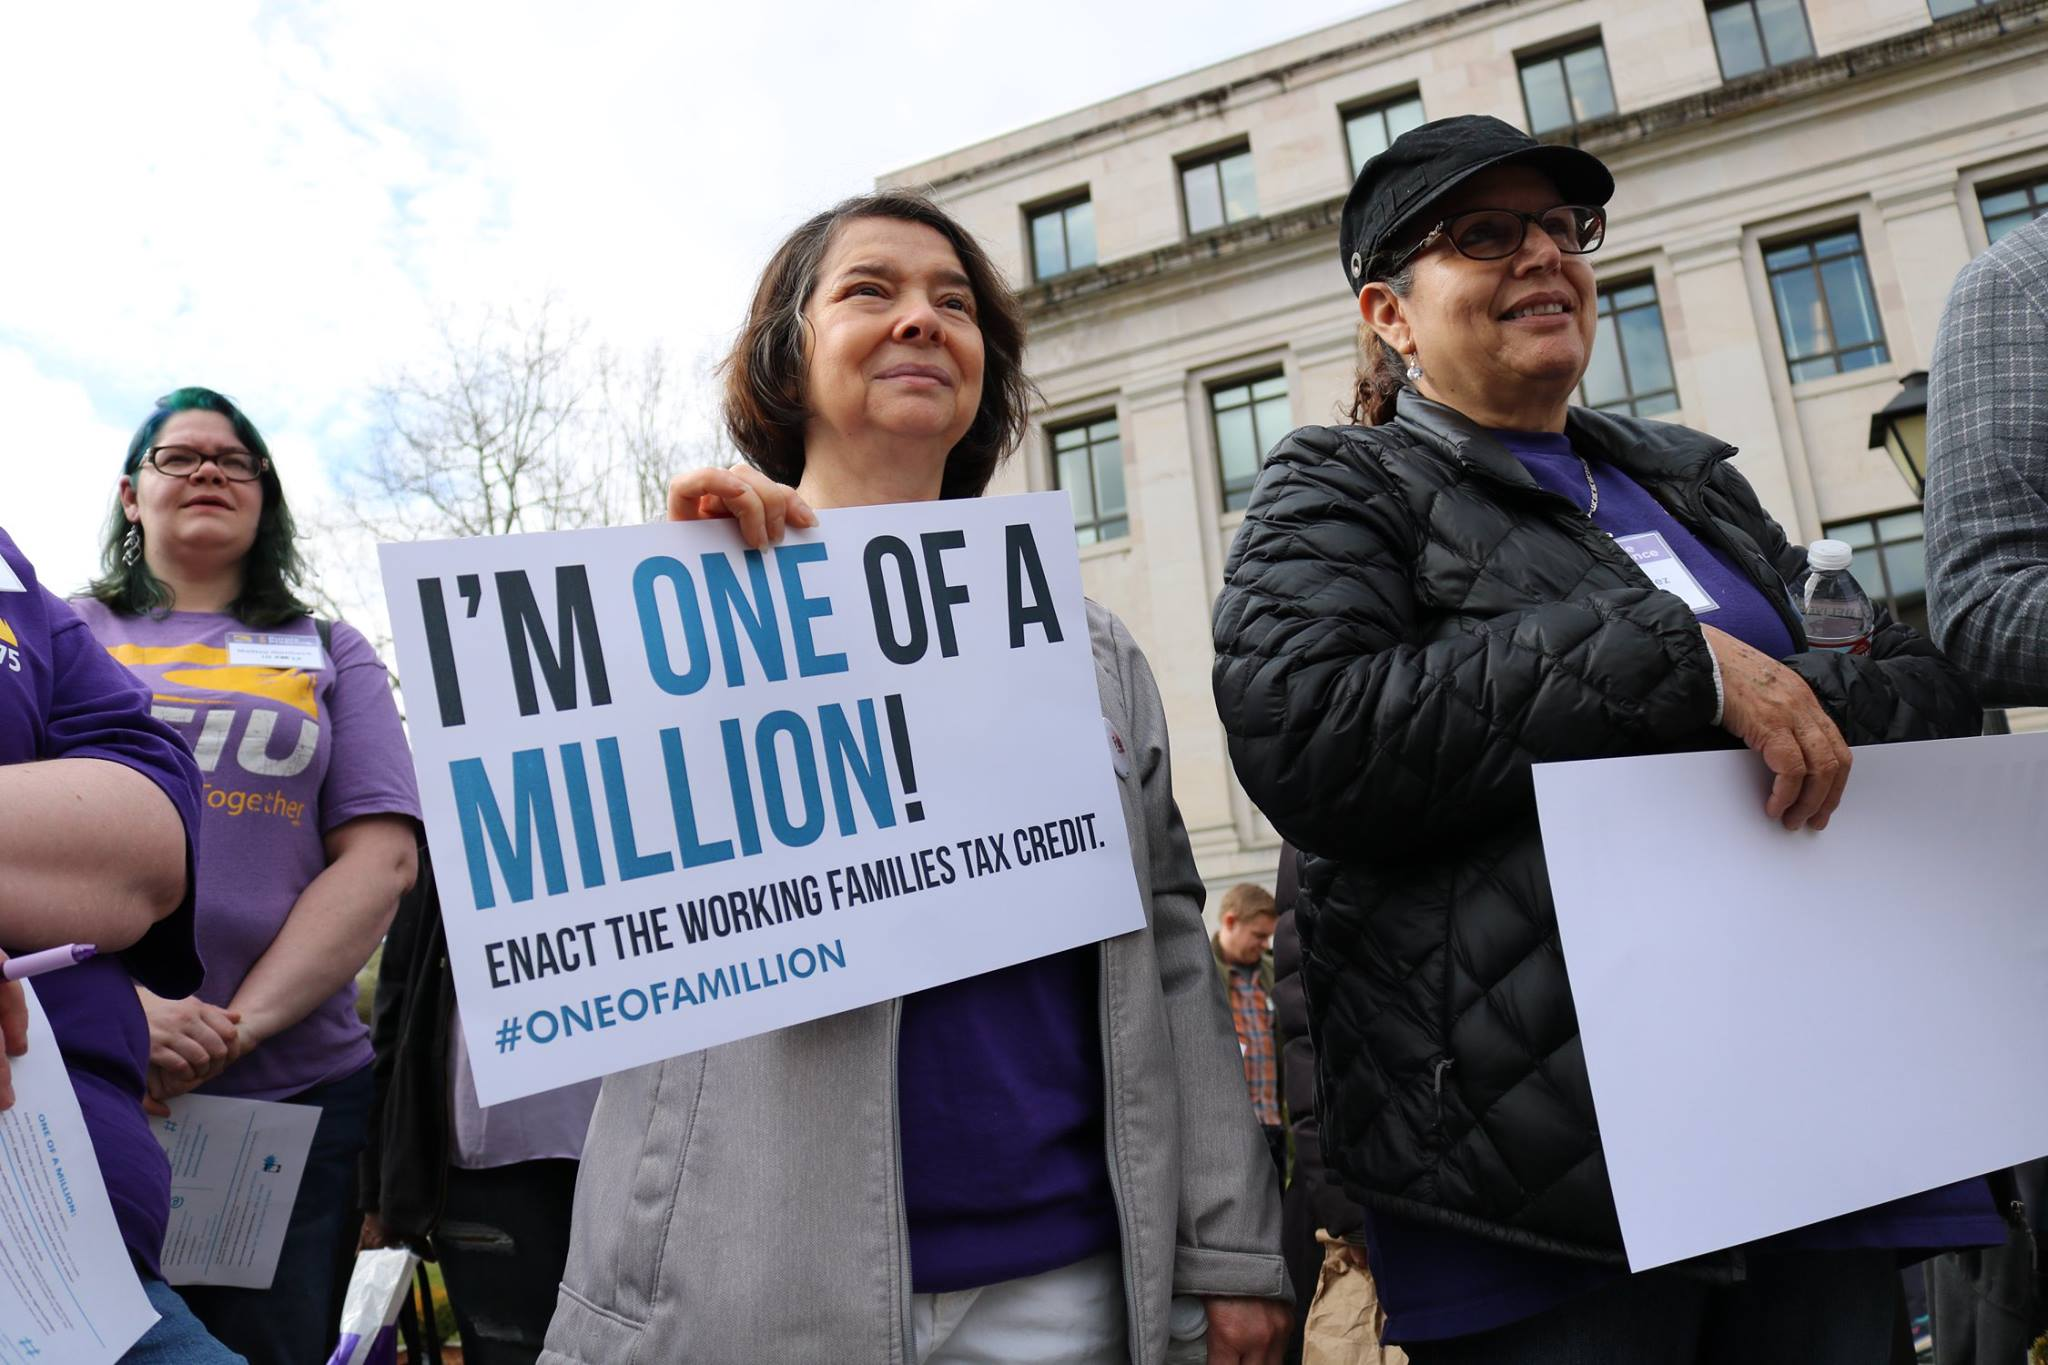 Community members at a rally for a Working Families Tax Credit (or Cost-of-Living Refund) in Washington State. (3/21/19)